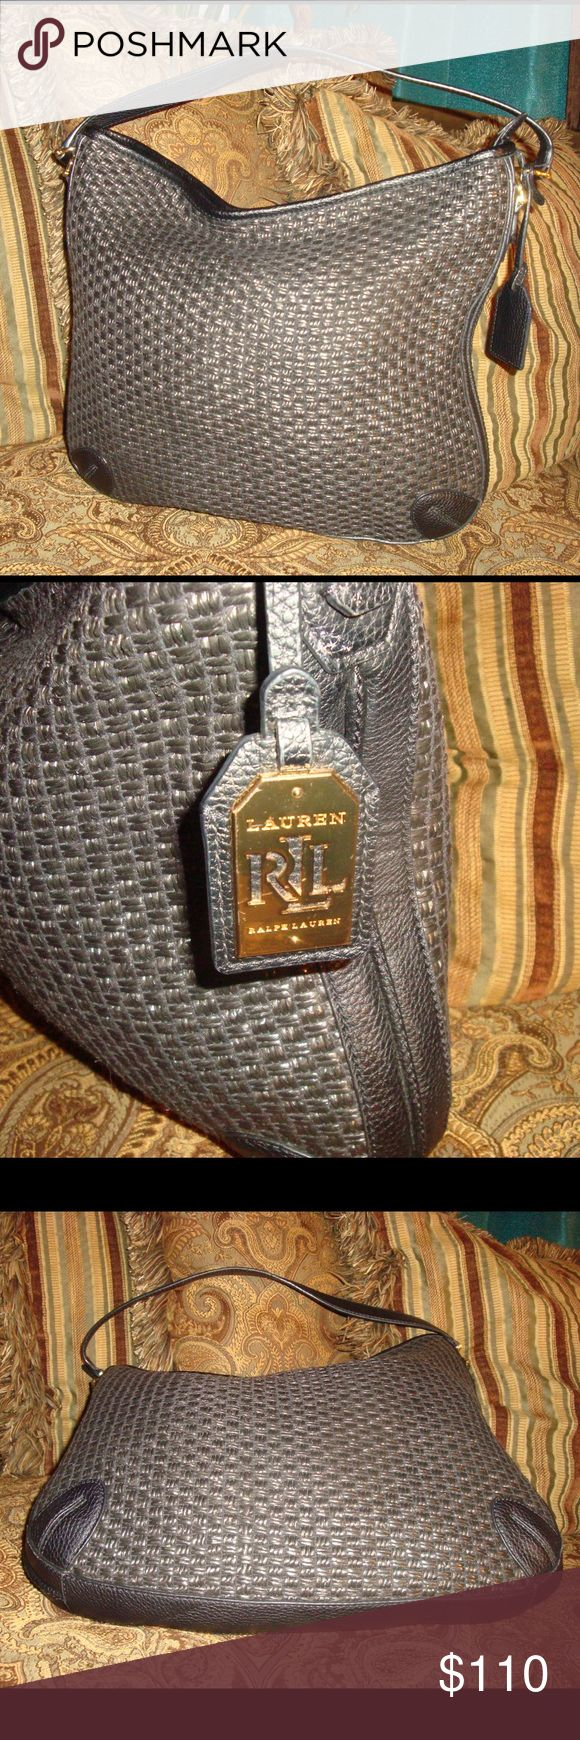 """Black Wicker Ralph Lauren Hobo Shoulder Bag Black Wicker Ralph Lauren Hobo Shoulder Bag measures 15"""" X 2"""" x 12 1/2"""" and has a single strap with a 9"""" strap drop. This bag closes with a zipper and has an inside zip, snap and two slip pockets. This is a great bag. Lauren Ralph Lauren Bags Hobos"""